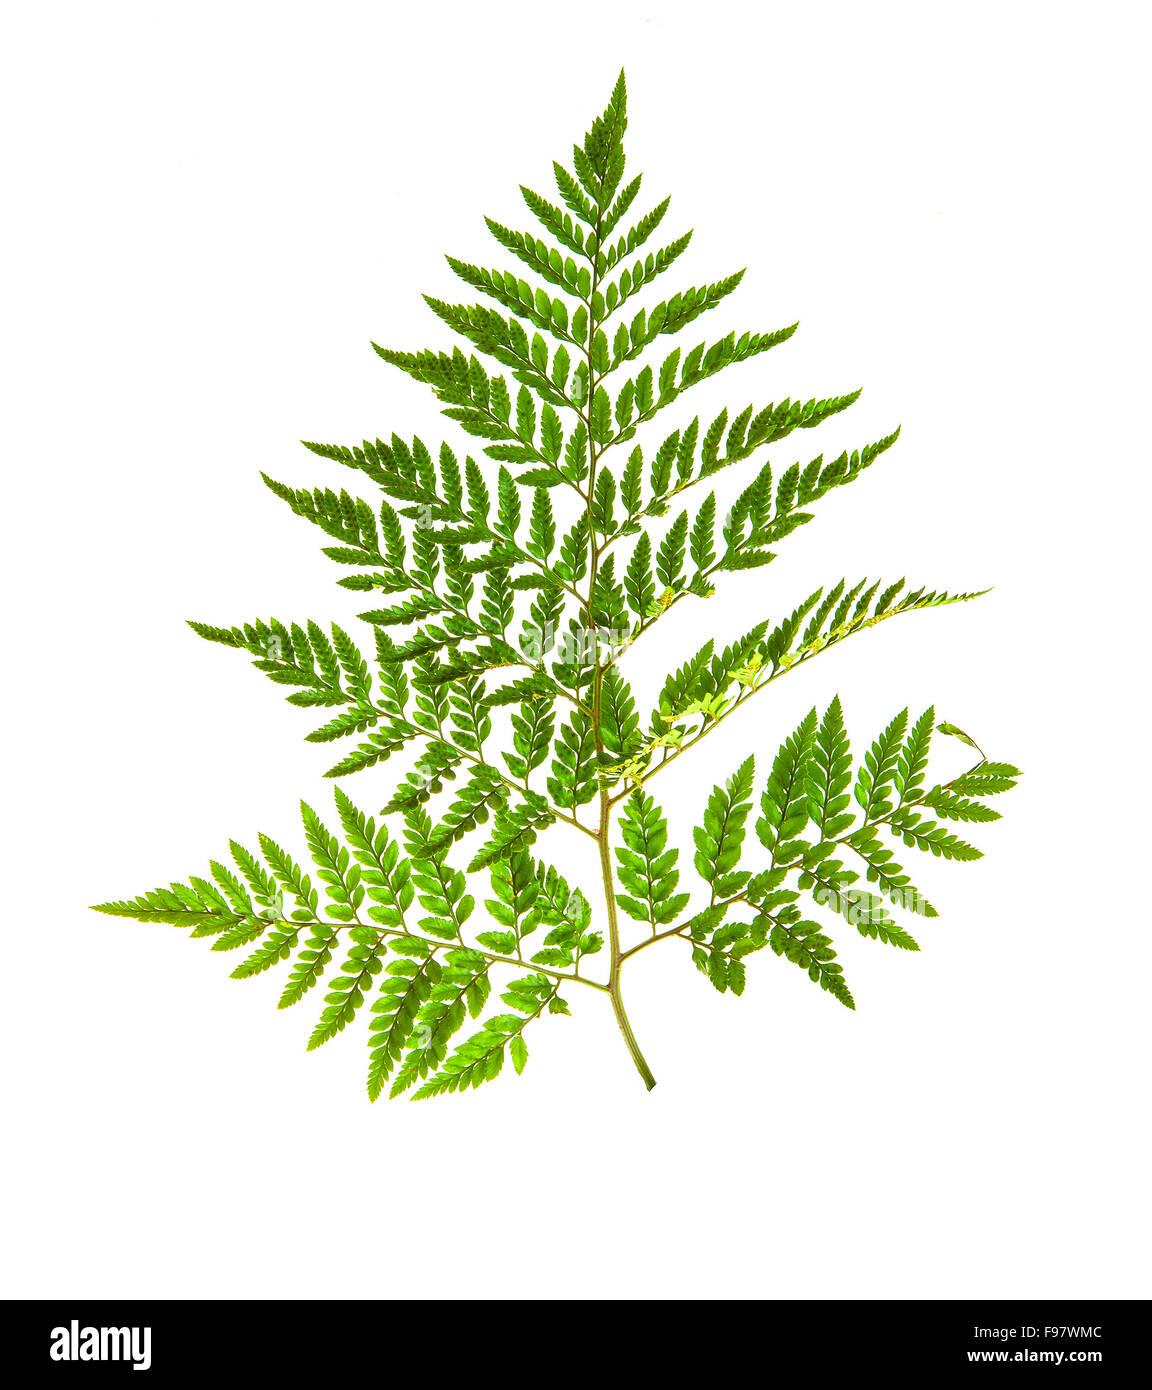 Fern isolated on white - Stock Image